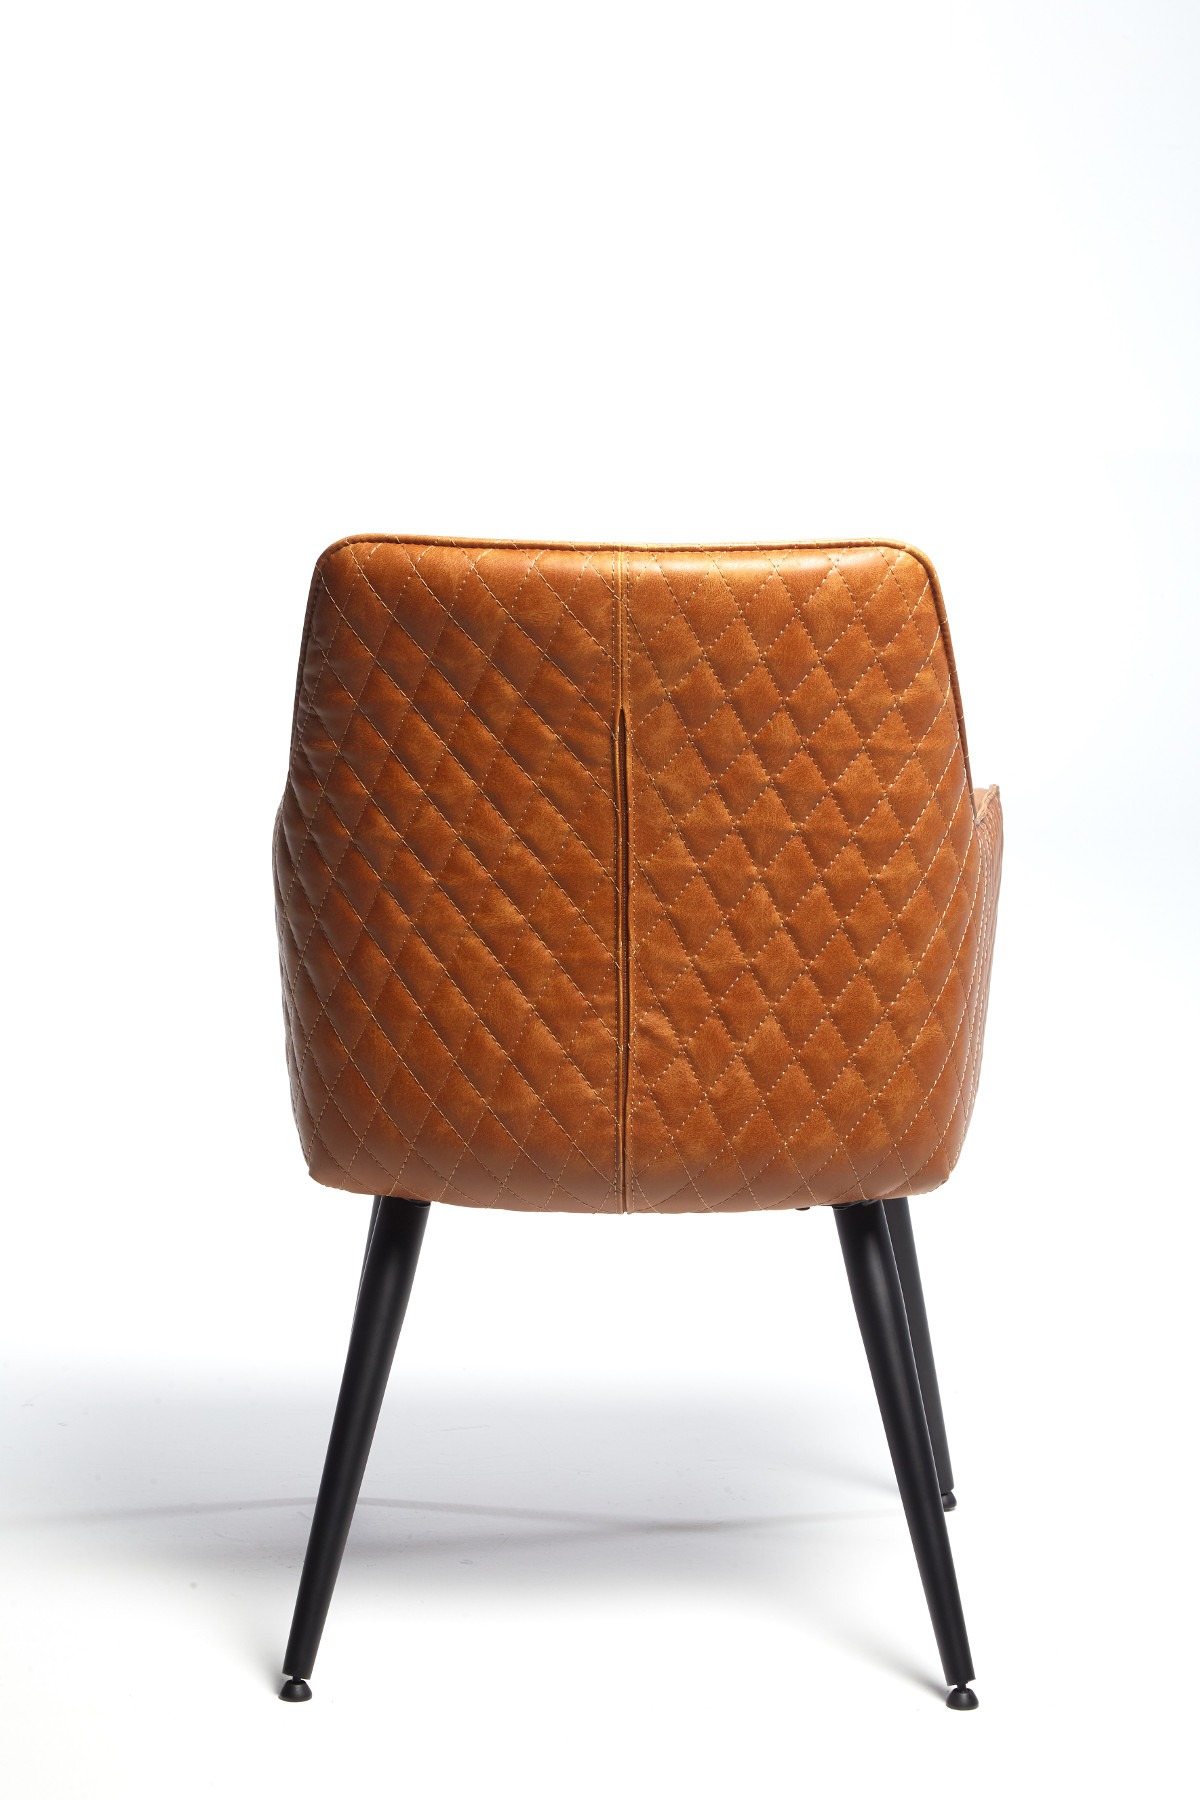 ORLANDO TAN ARM CHAIR BACK DETAIL